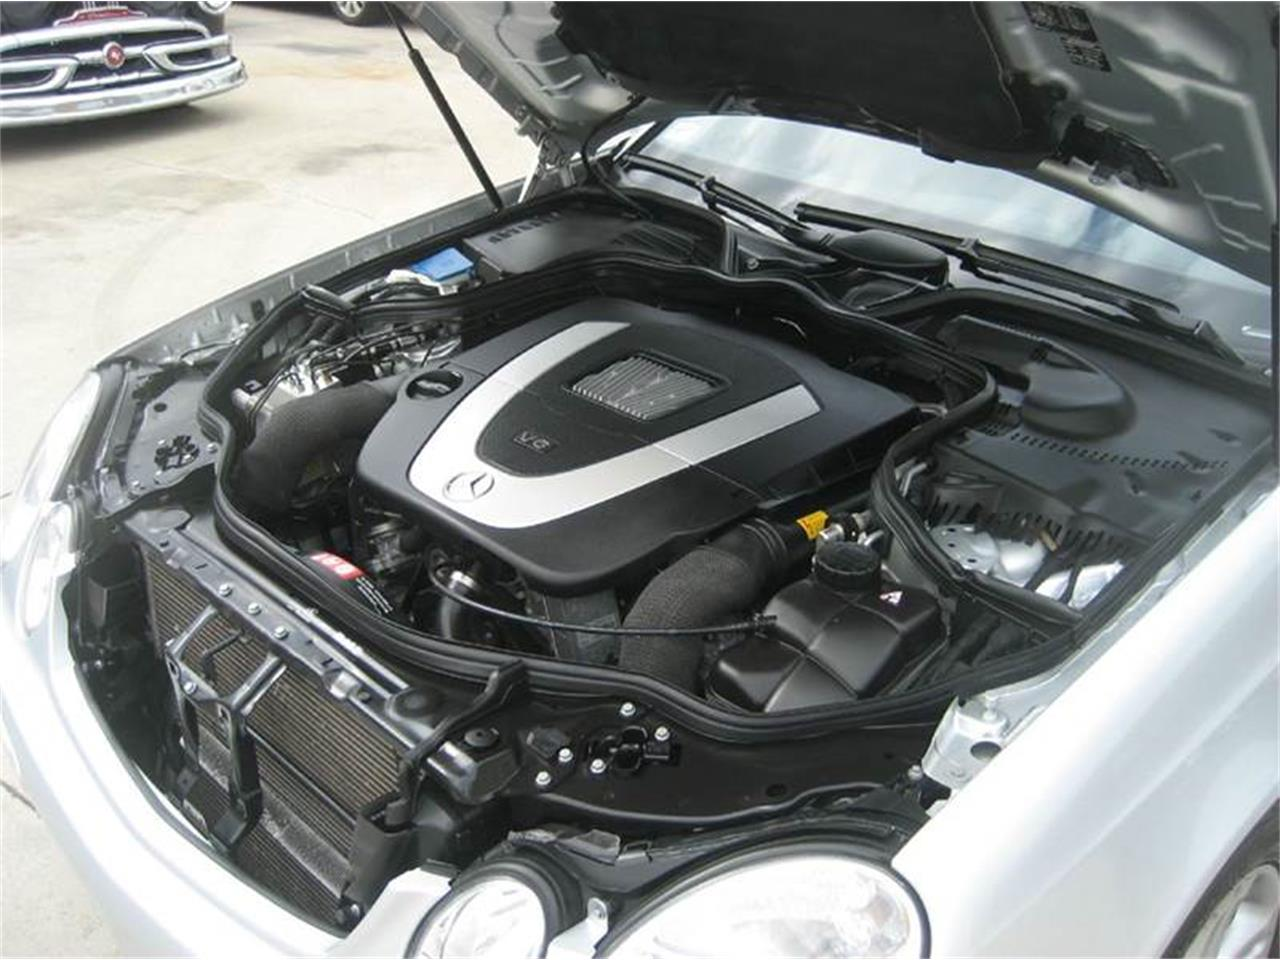 Large Picture of '06 E-Class located in Brea California Auction Vehicle Offered by Highline Motorsports - EG2M